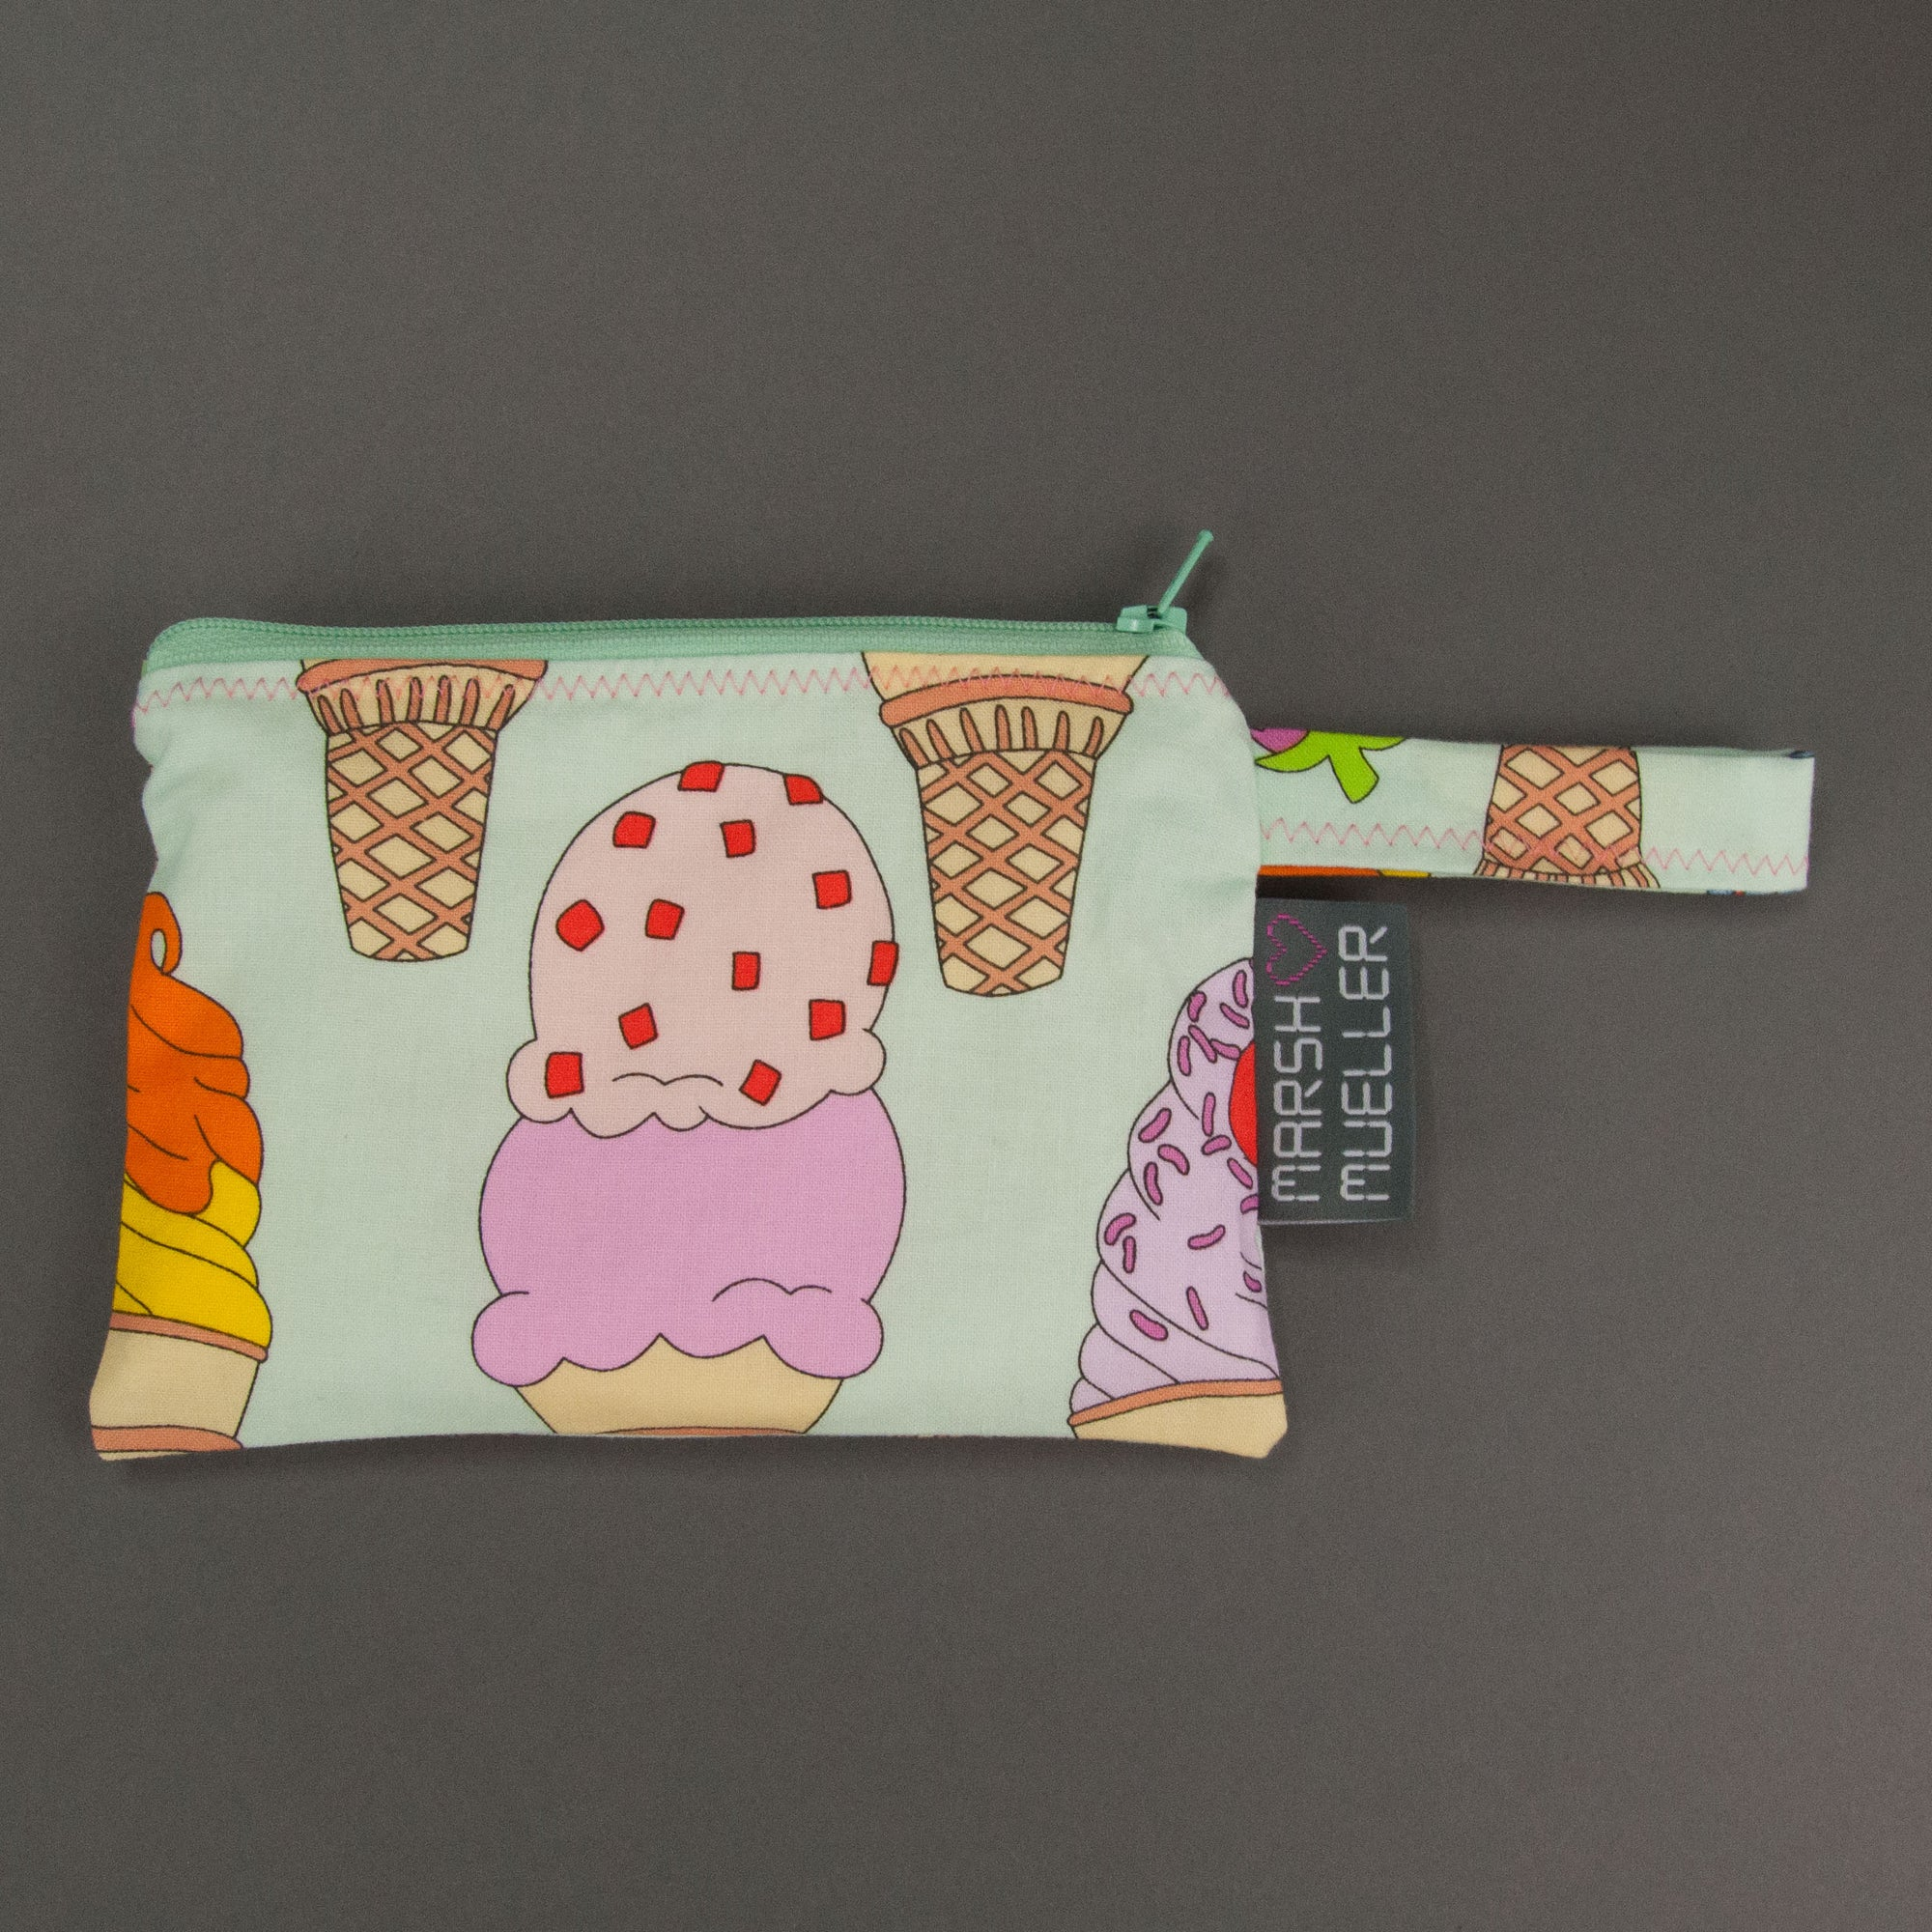 I Scream, You Scream Reusable Snack Bag, Reusable Snack Bag, - MarshMueller